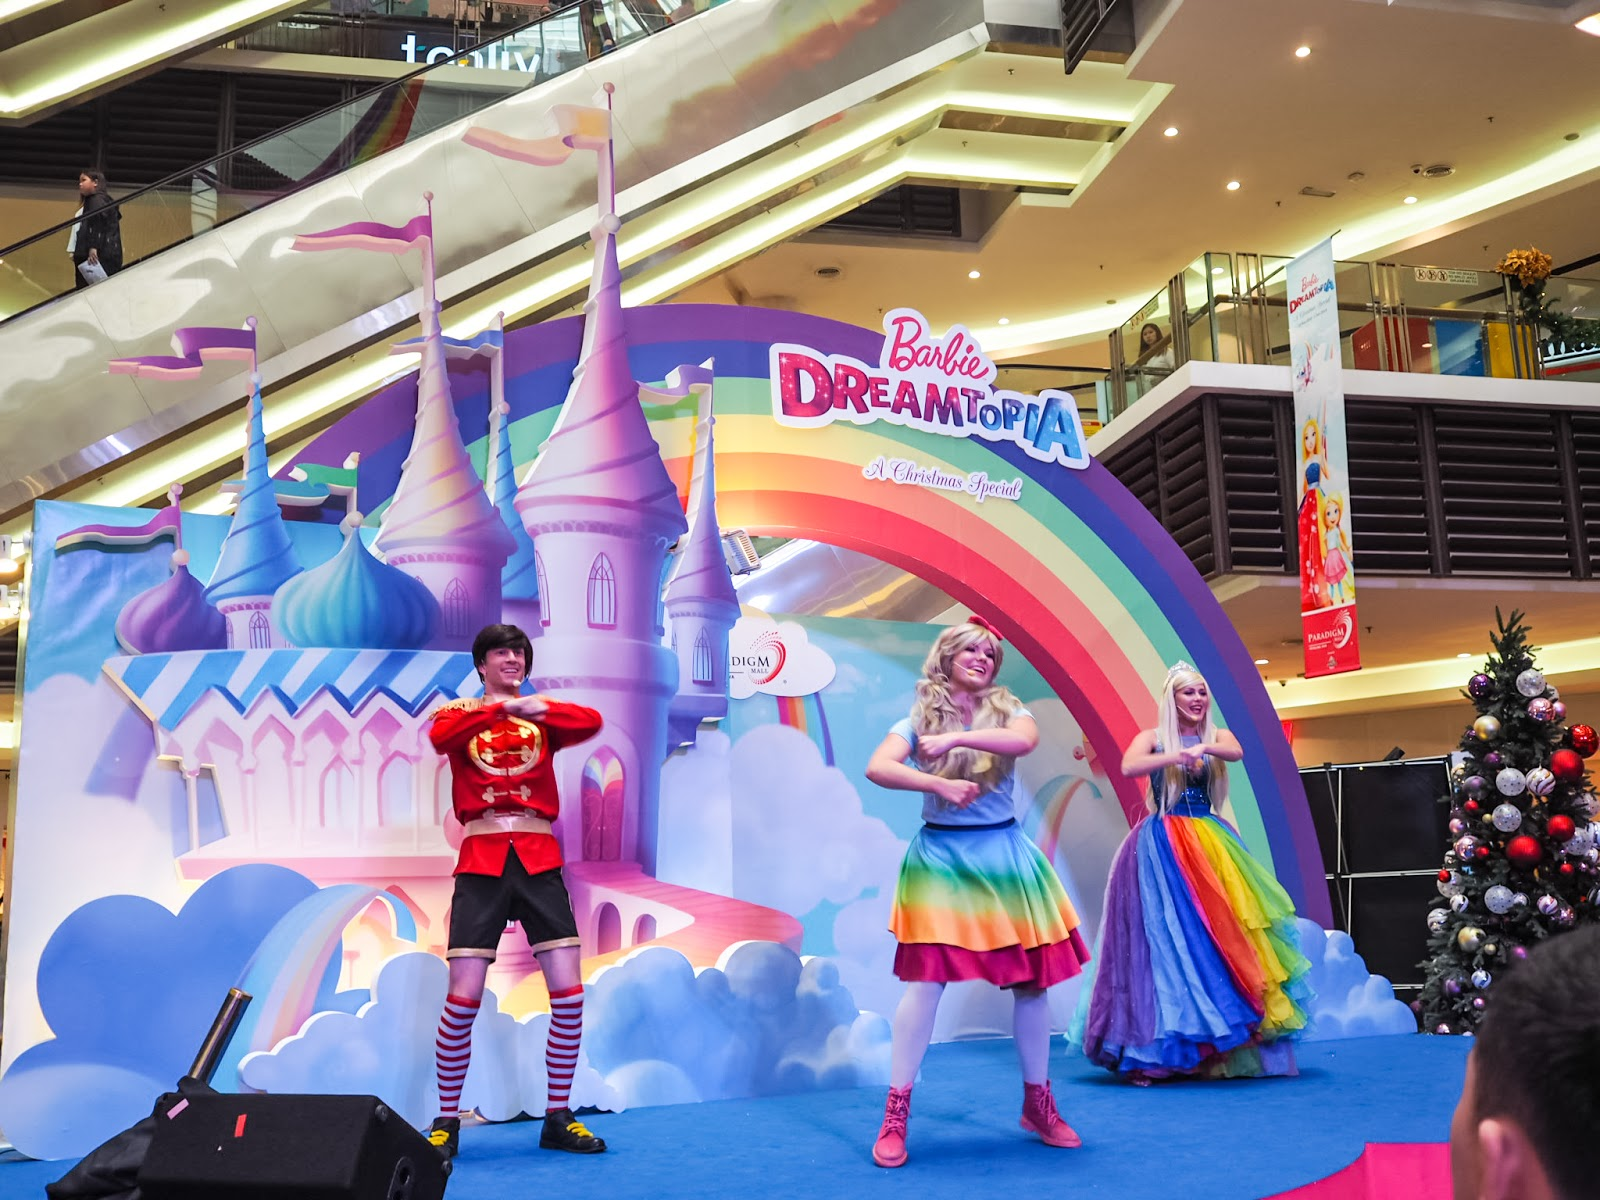 Celebrate Christmas At Paradigm Mall With The First Barbie